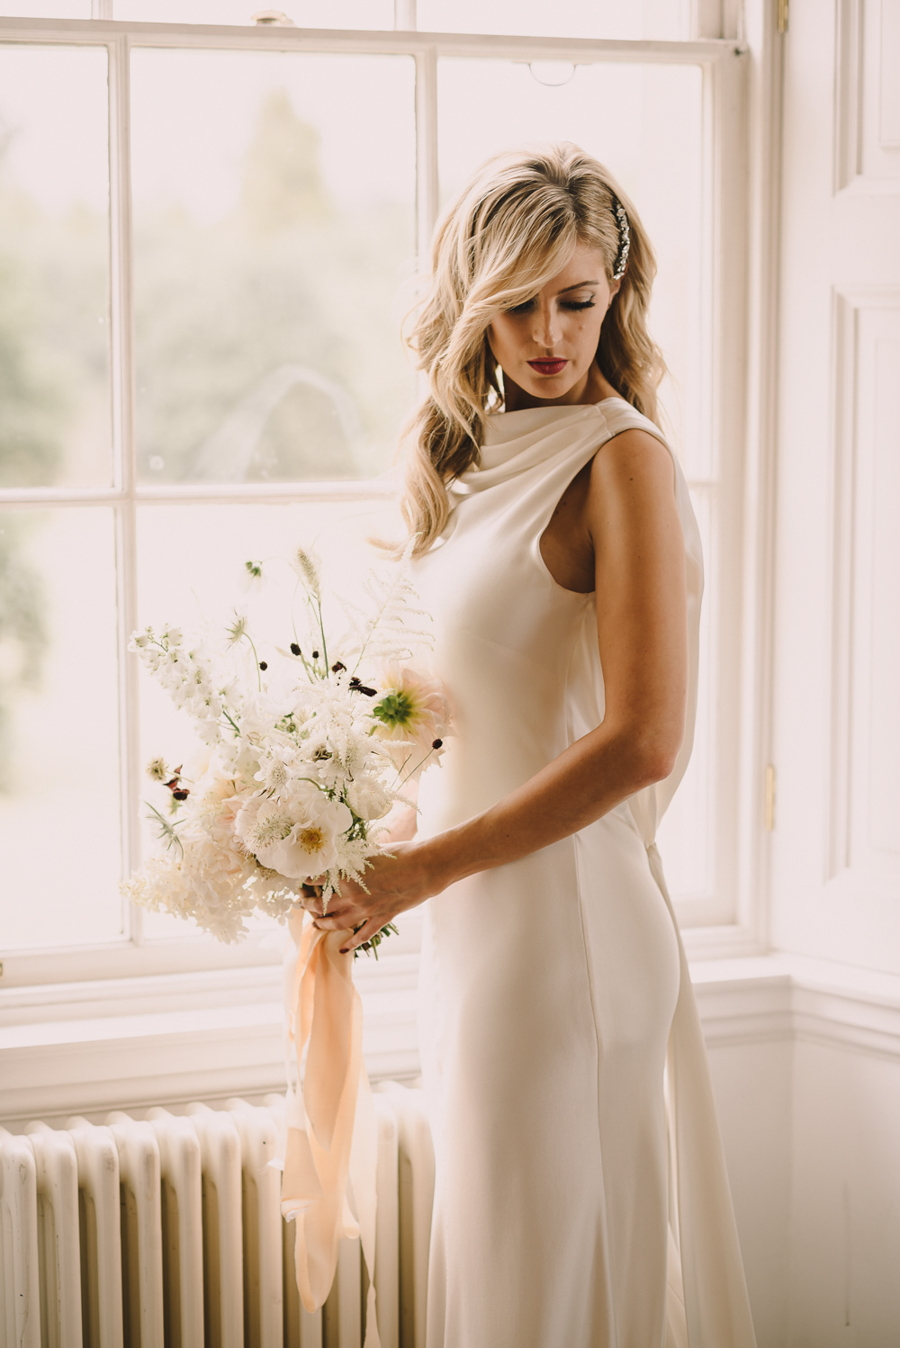 Stylish, Luxe Bridal Shoot With Elegant Tones of Gold, Nude & Marsala!